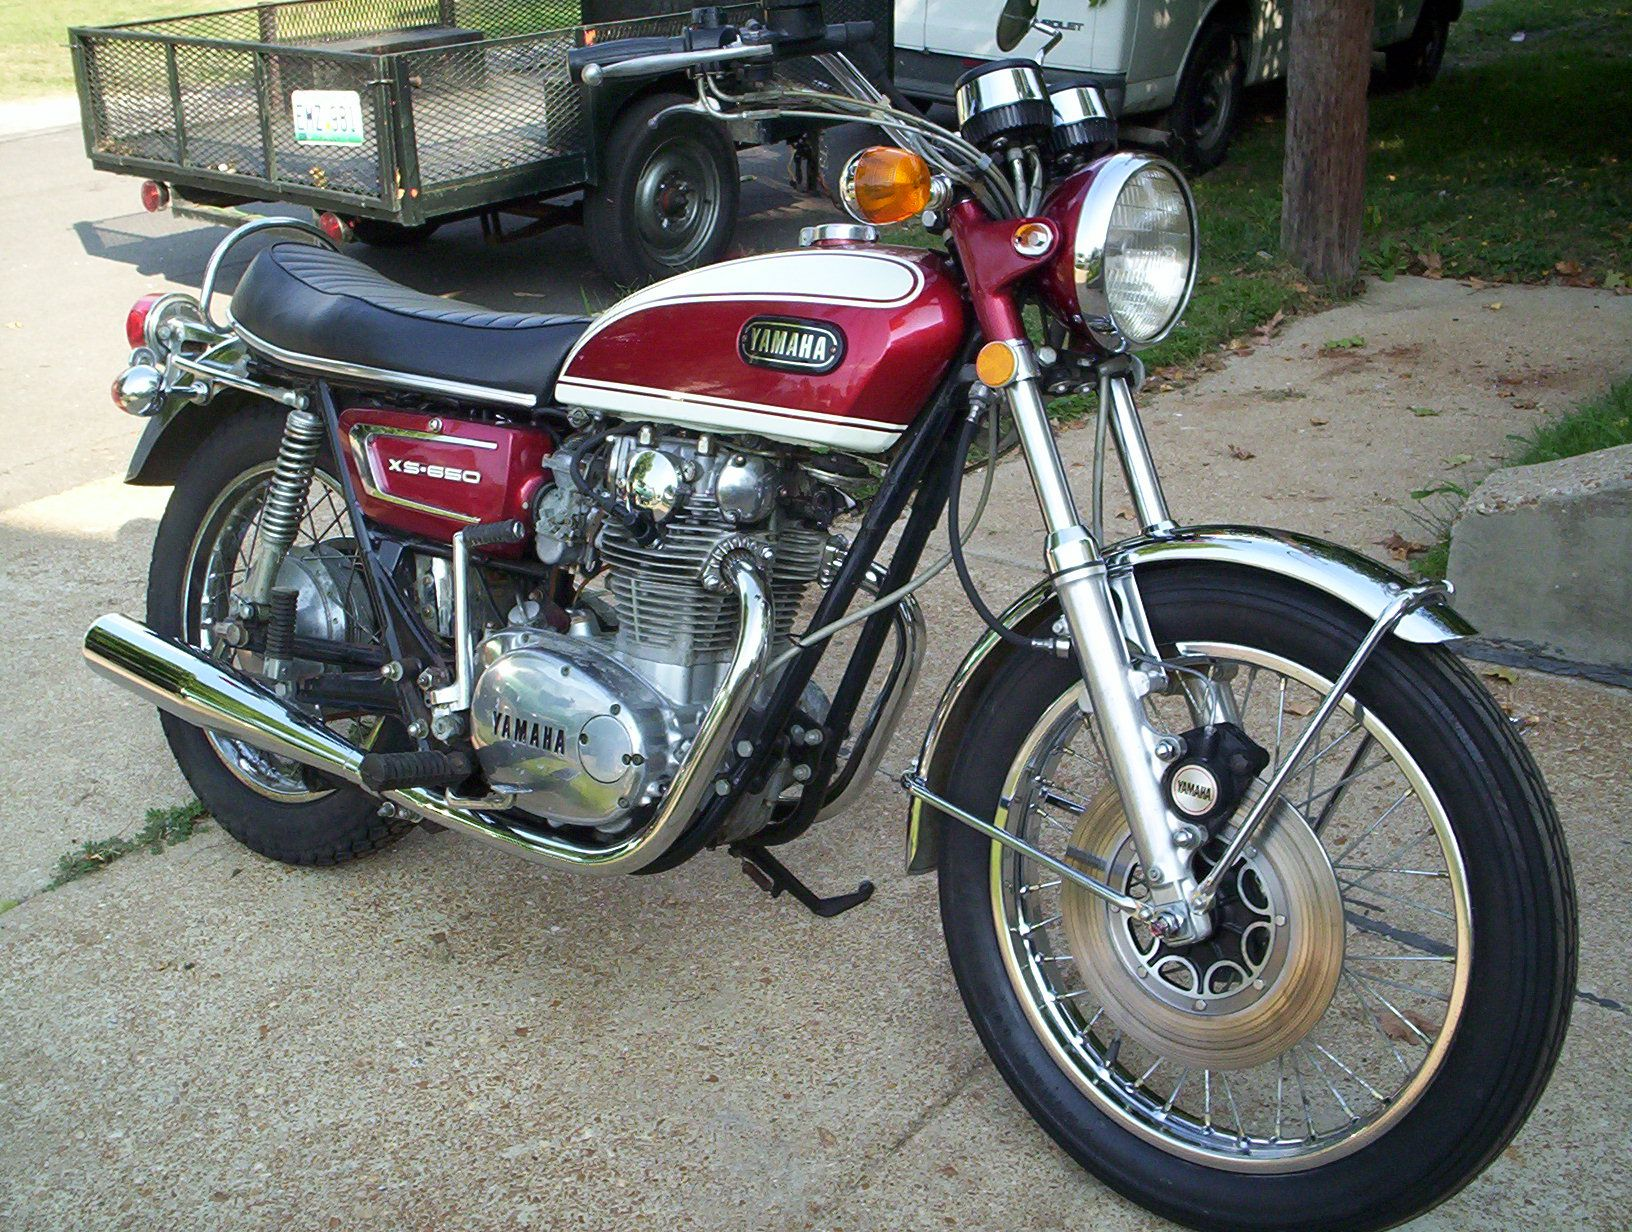 Yamaha XS650 - now, just add the right side crossover pipes